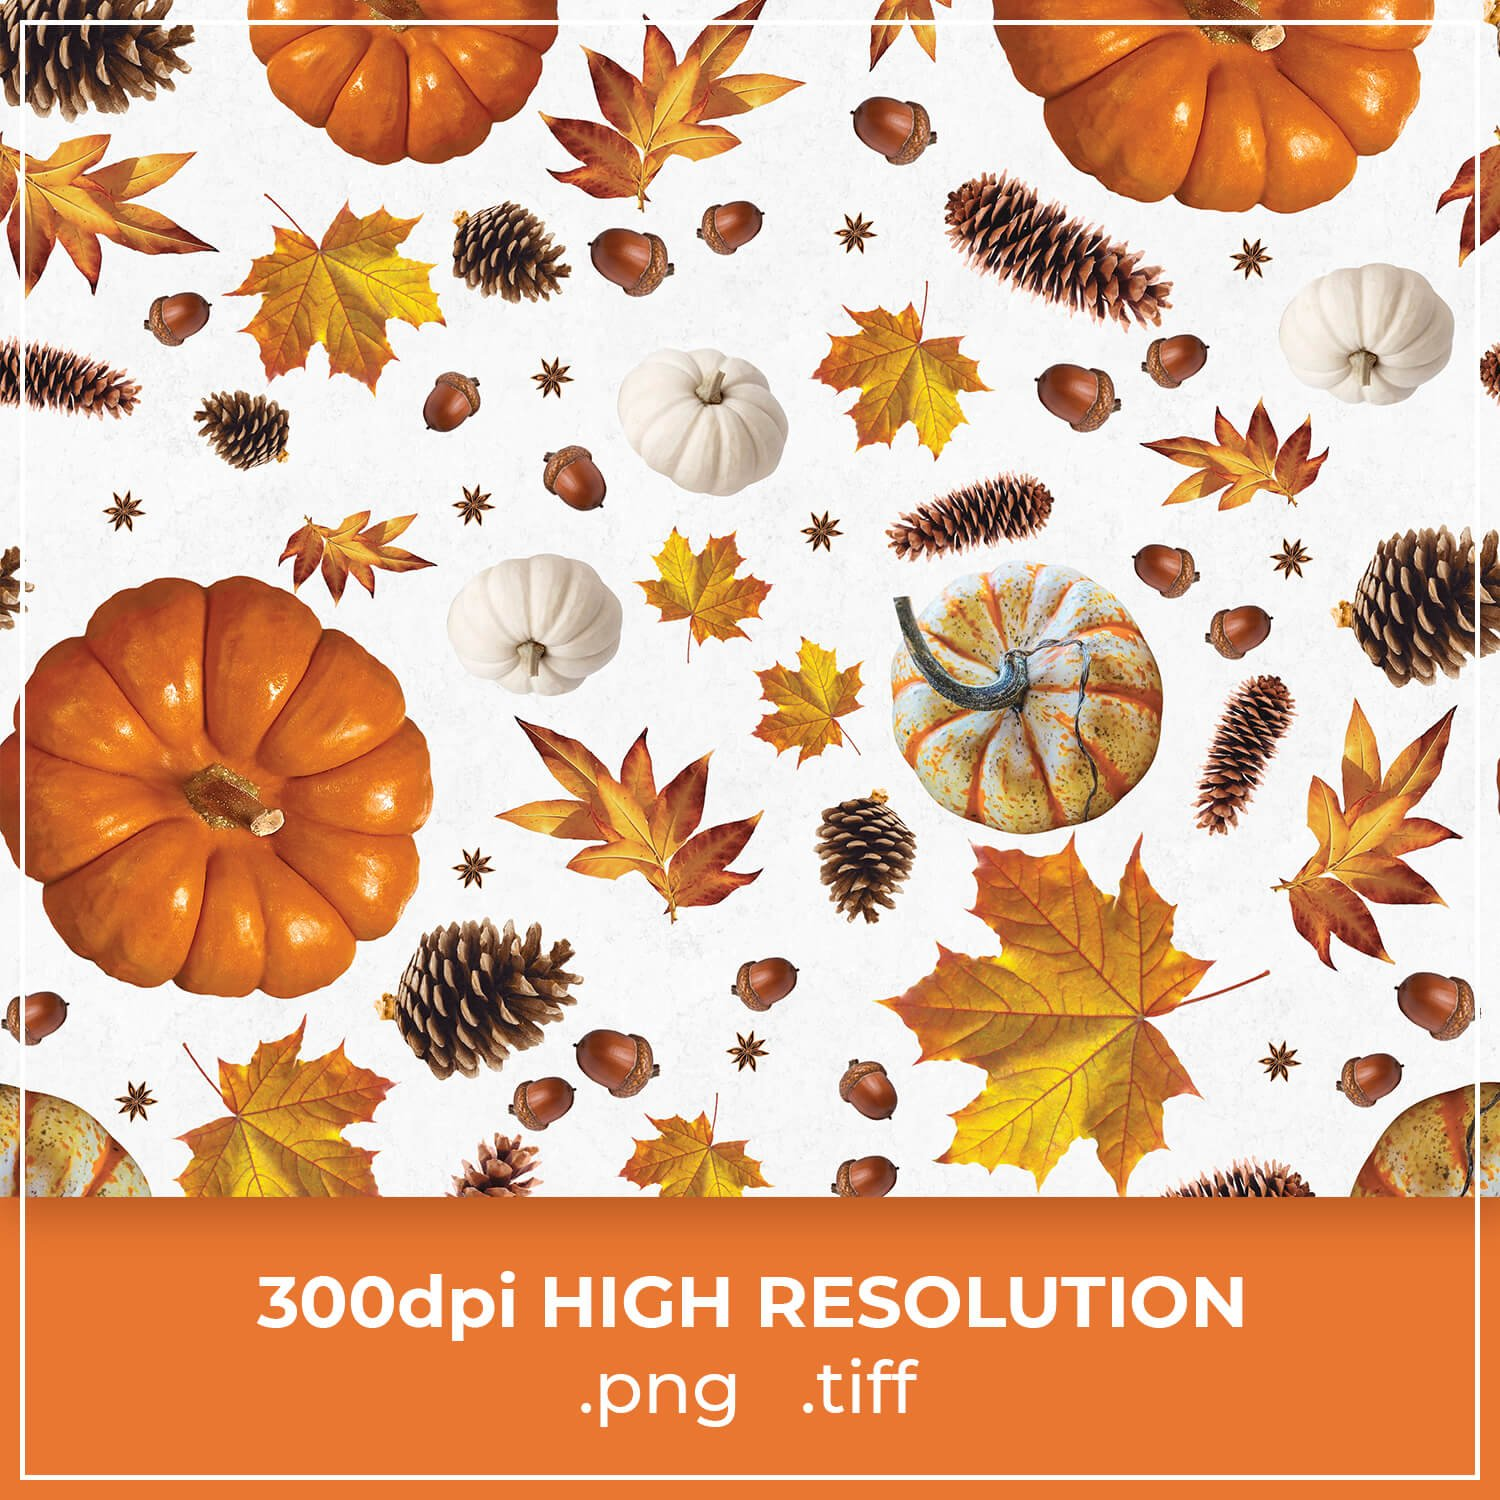 Free White Thanksgiving Patterns cover image.